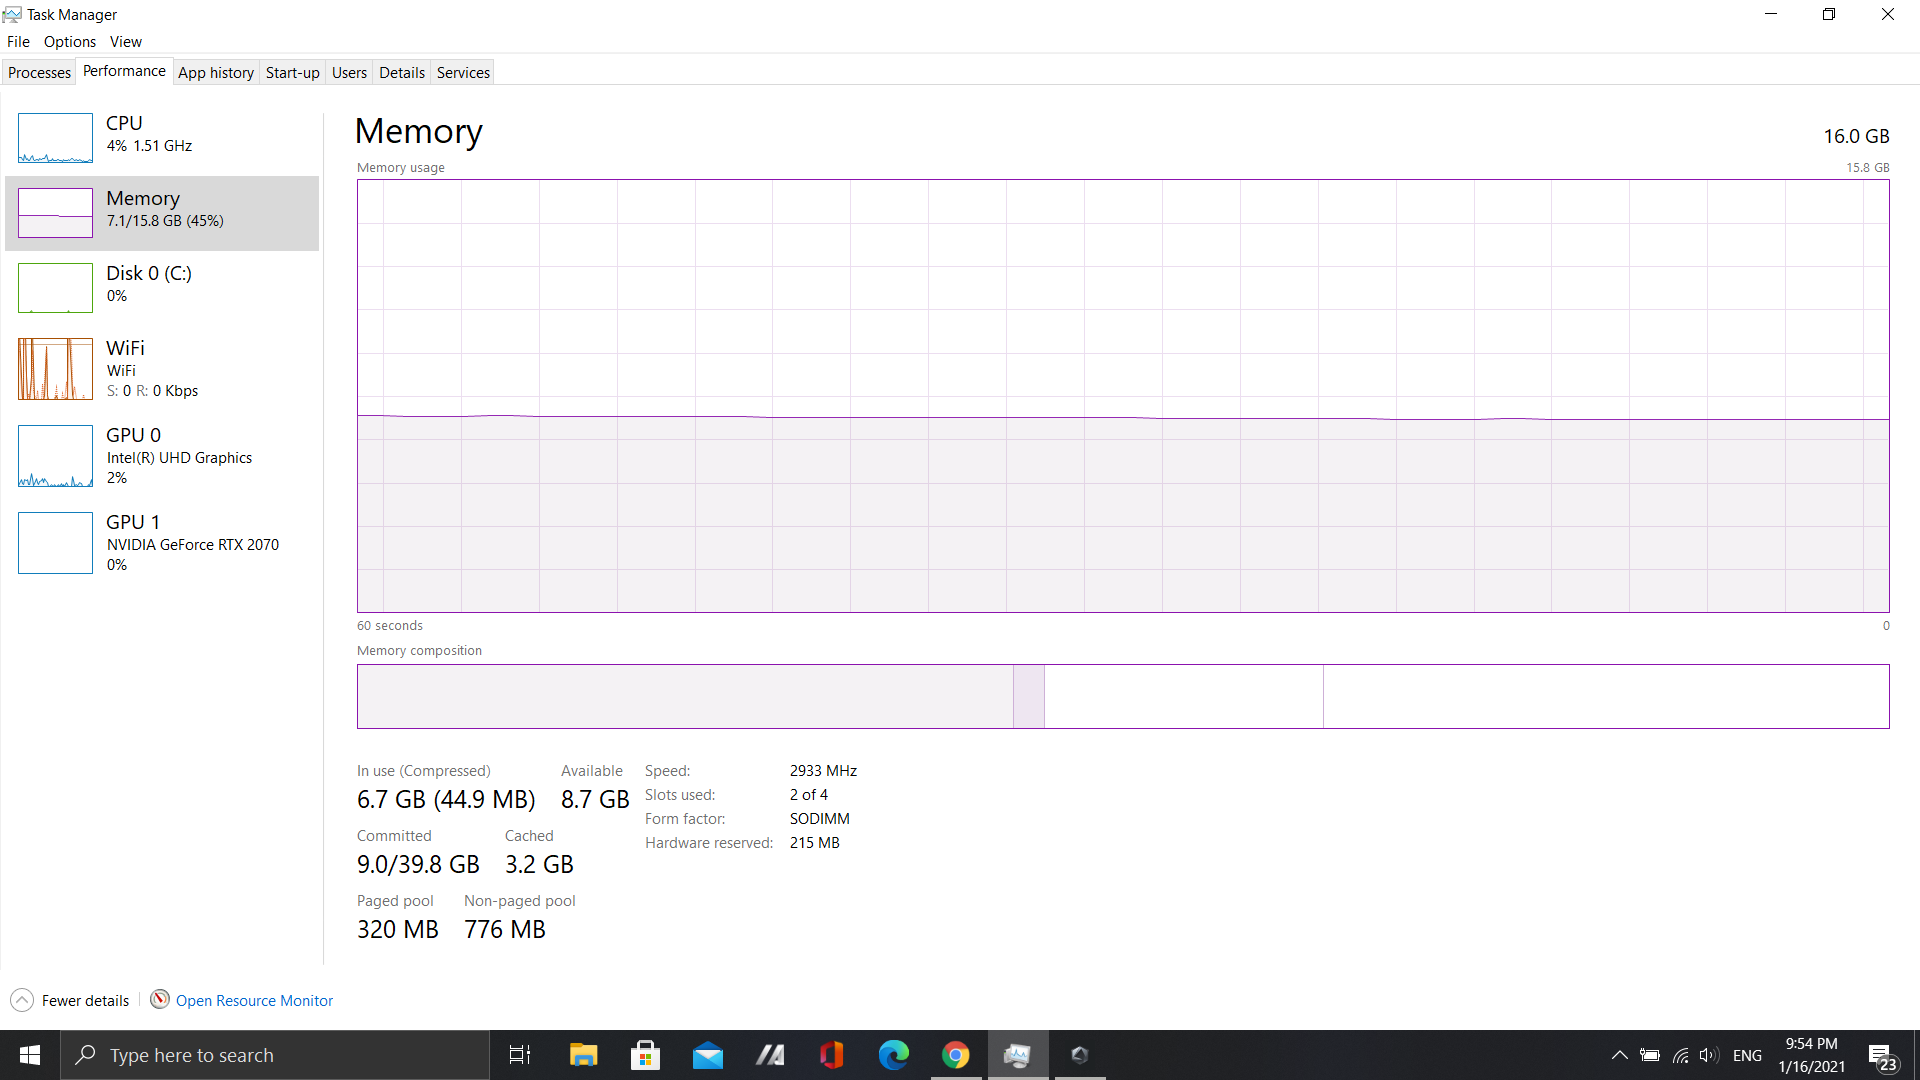 High ram usage and a 800mb in the non-paged pool 31ec2813-a94a-4e9b-9099-c66fdb24fecf?upload=true.png